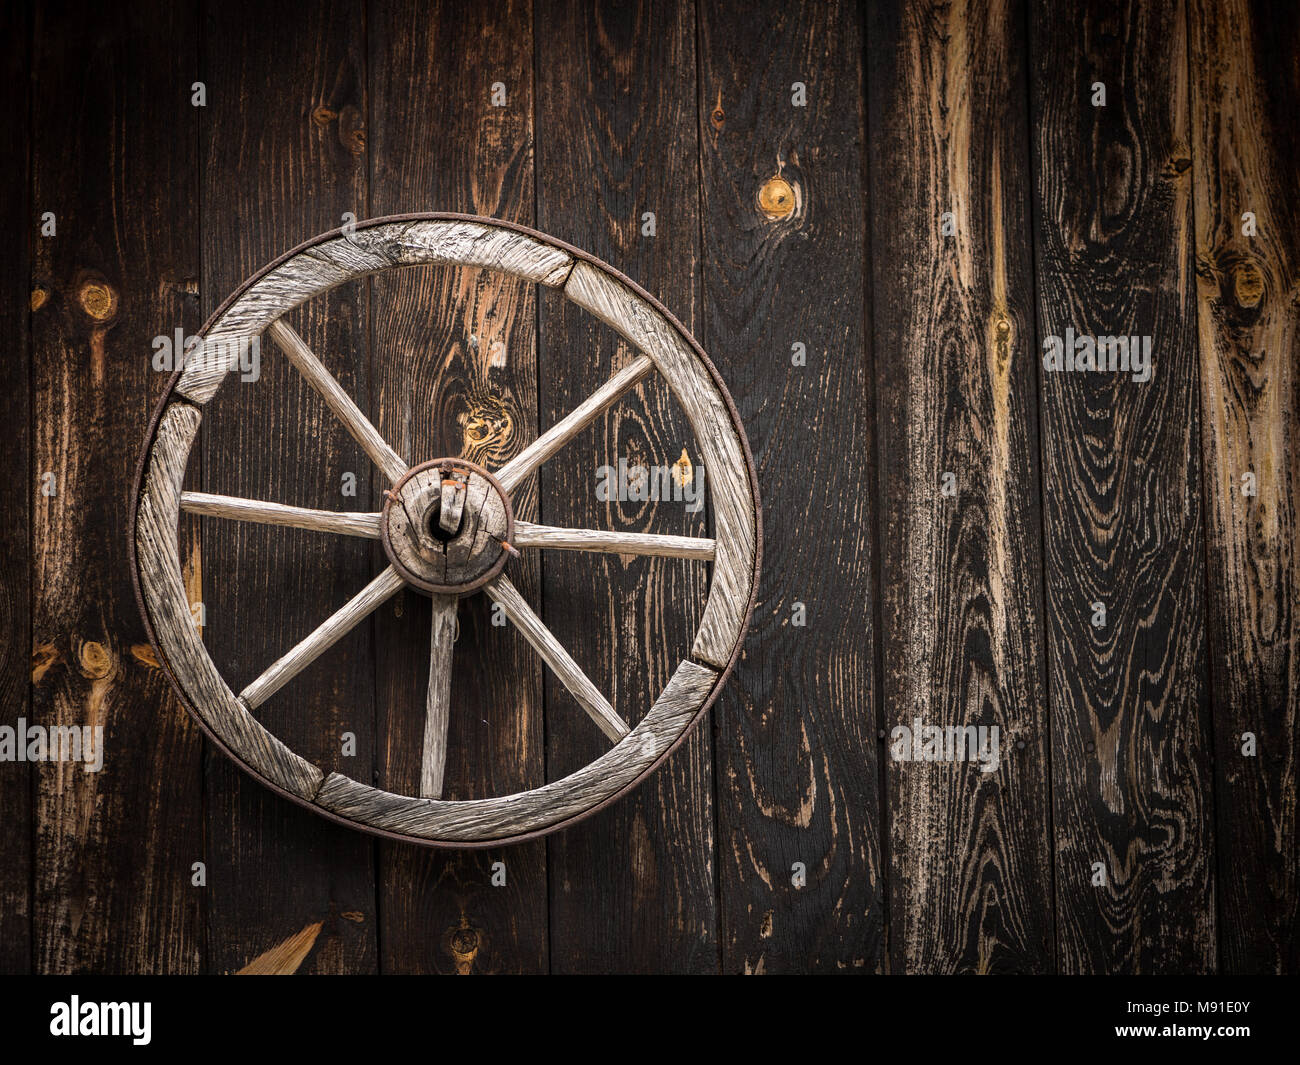 Old cartwheel hanging on a wooden barn wall, Austria - Stock Image